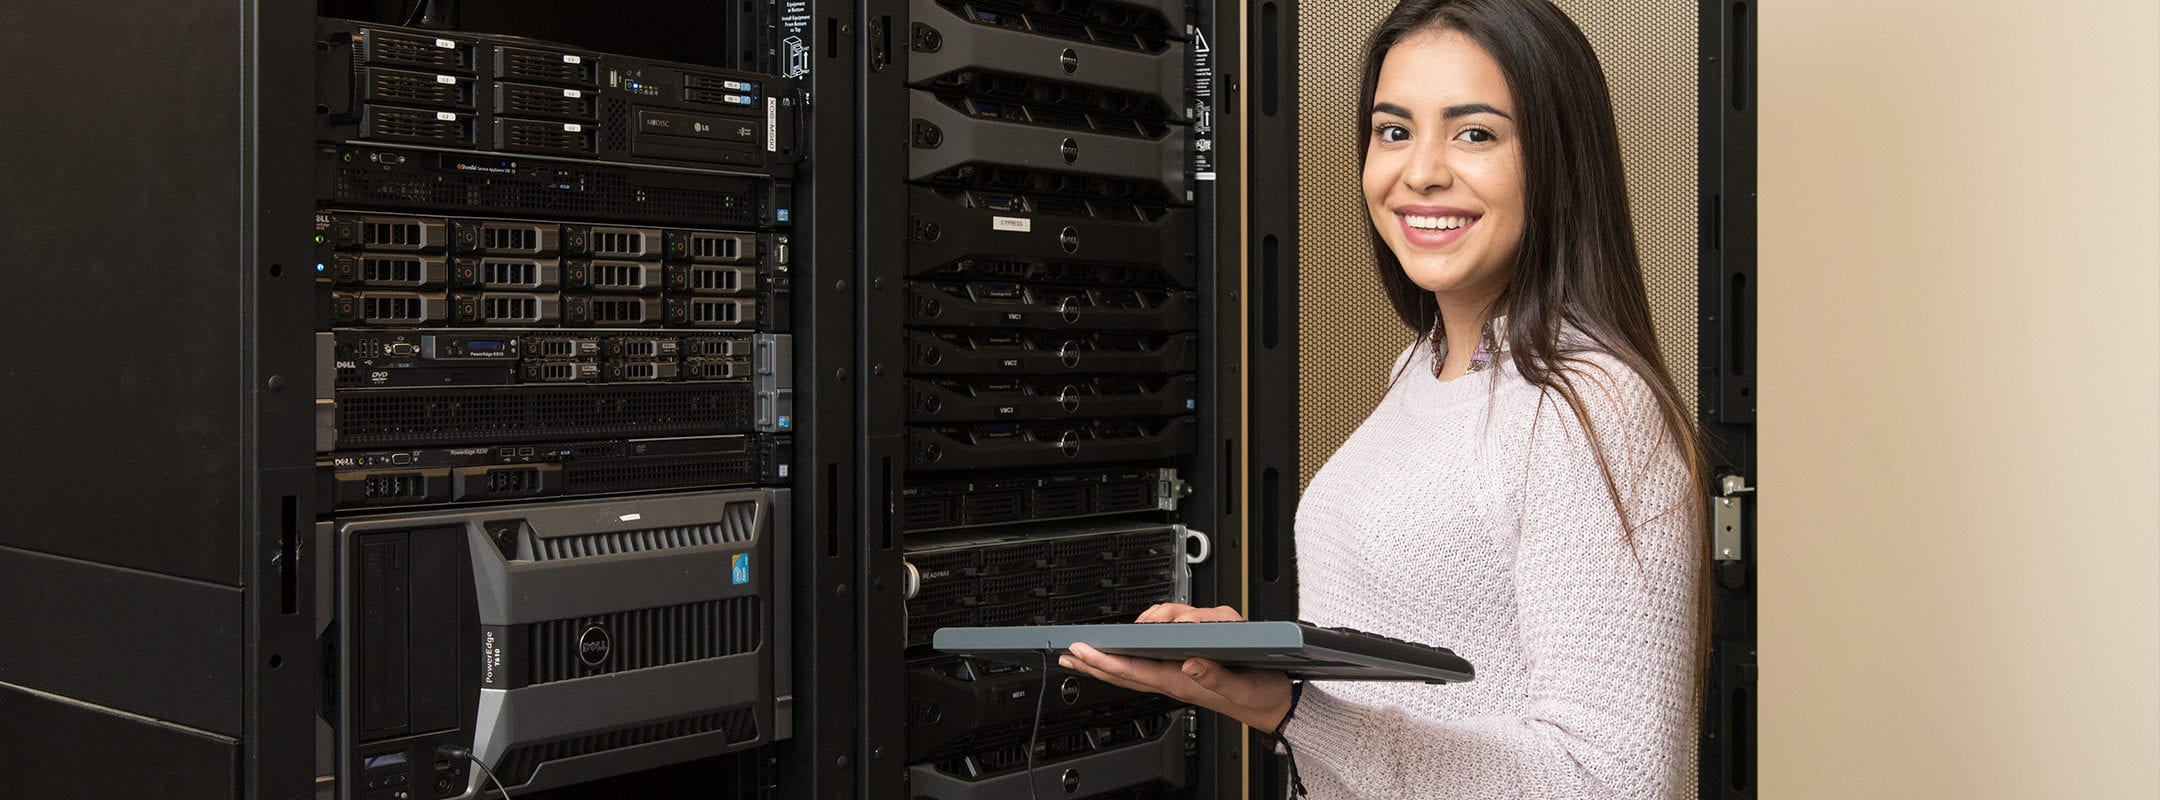 An African American woman standing at a rack of computer servers with a keyboard in her hand.